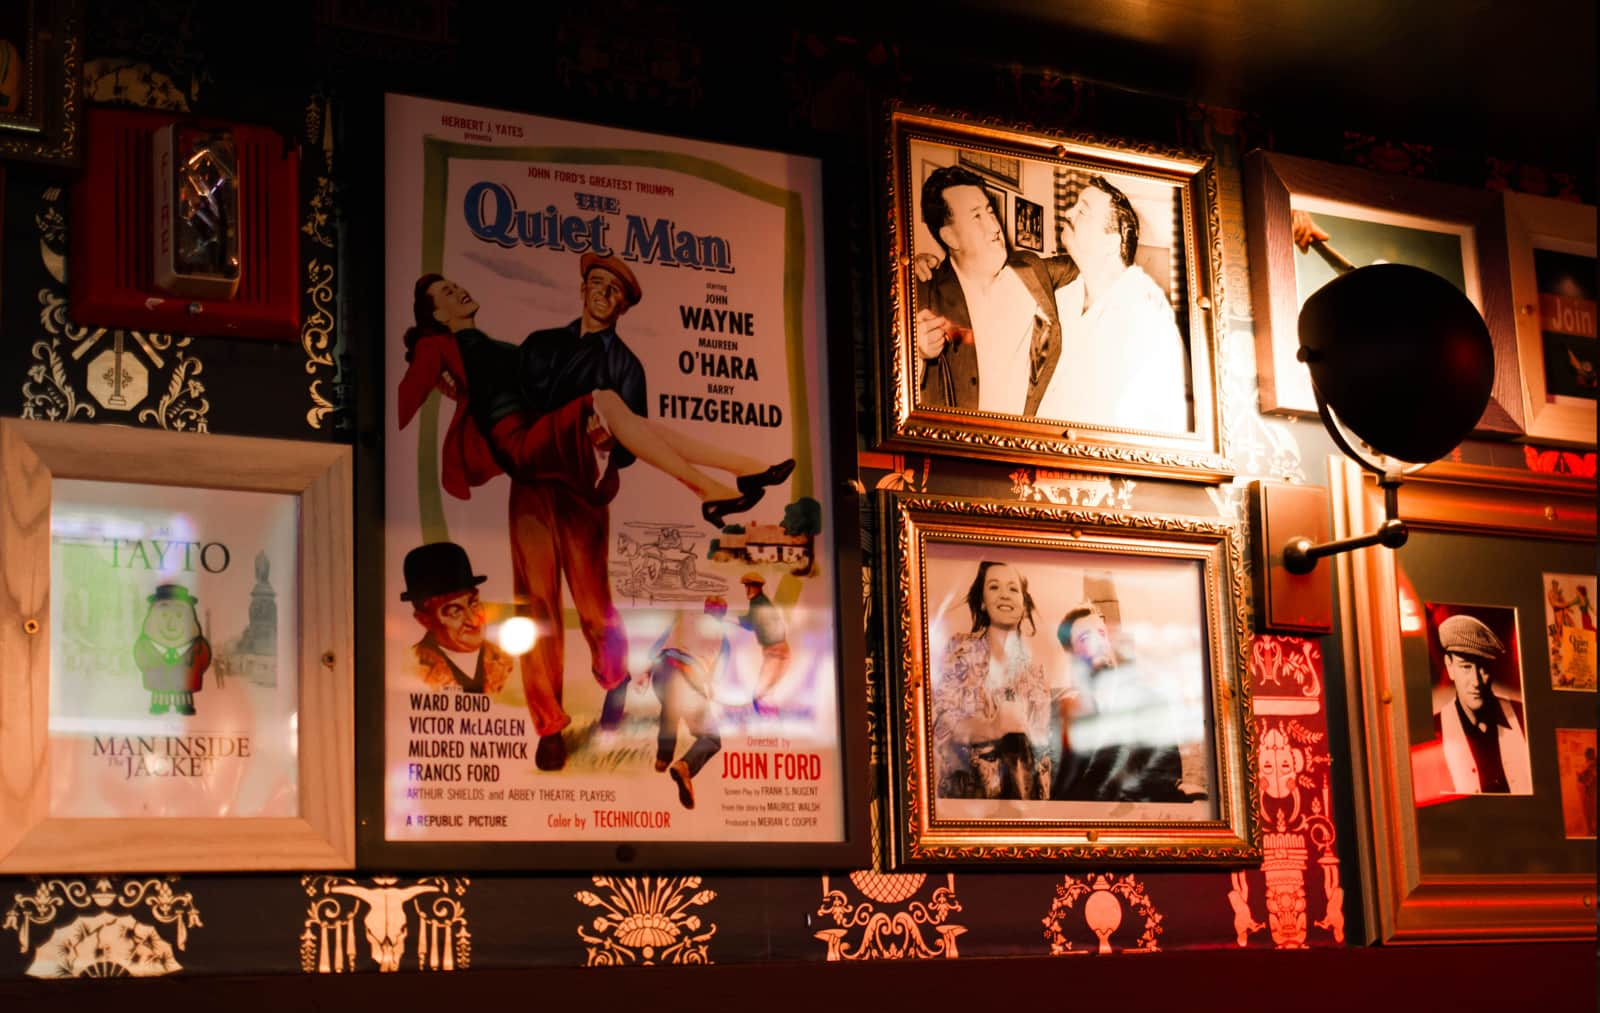 TheMeanFiddler-26-min Times Square Private events, Sports & Party Bar - The Mean Fiddler